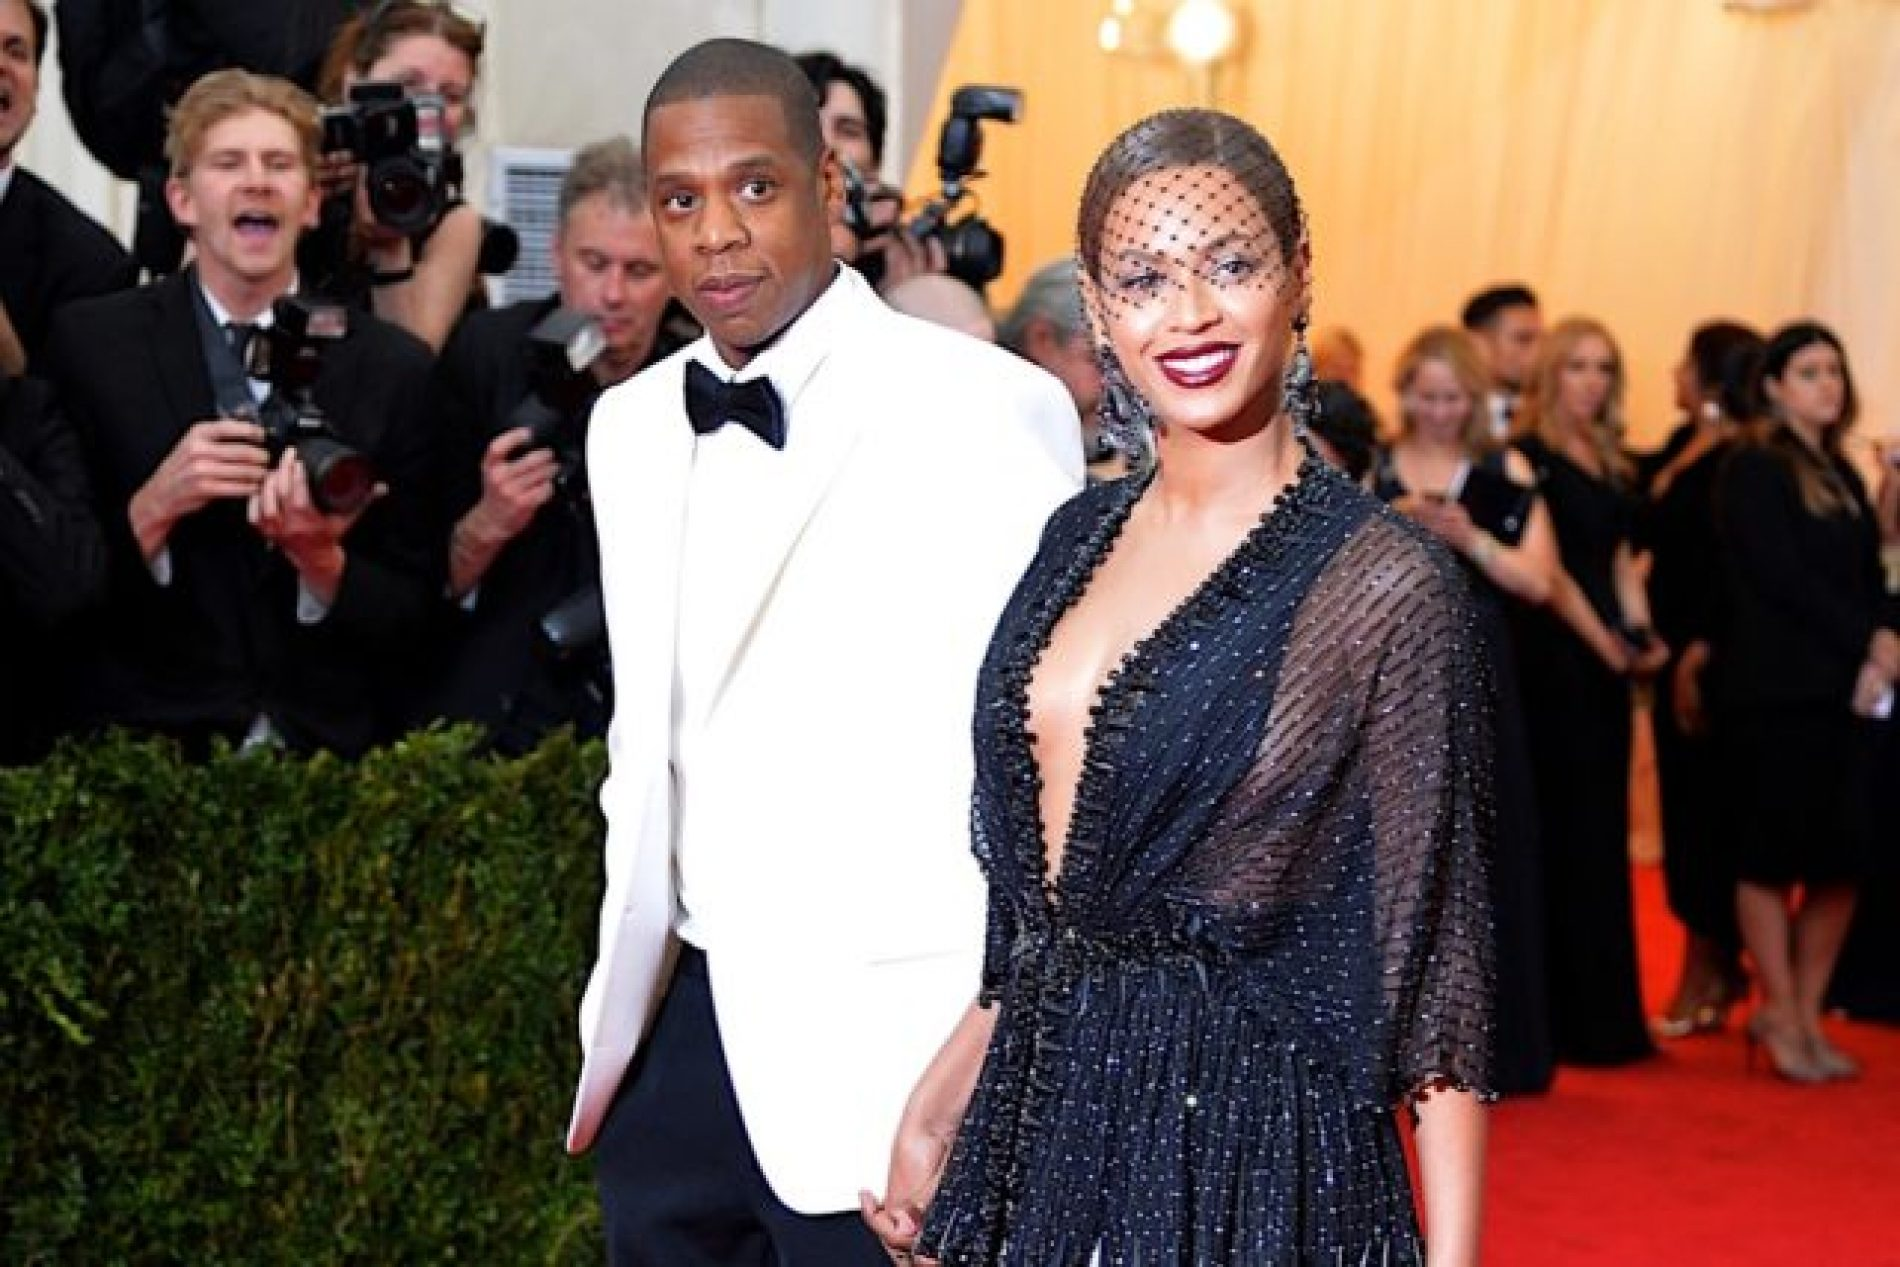 Beyoncé and Jay Z to be honored by GLAAD with the Vanguard Award for their LGBT advocacy